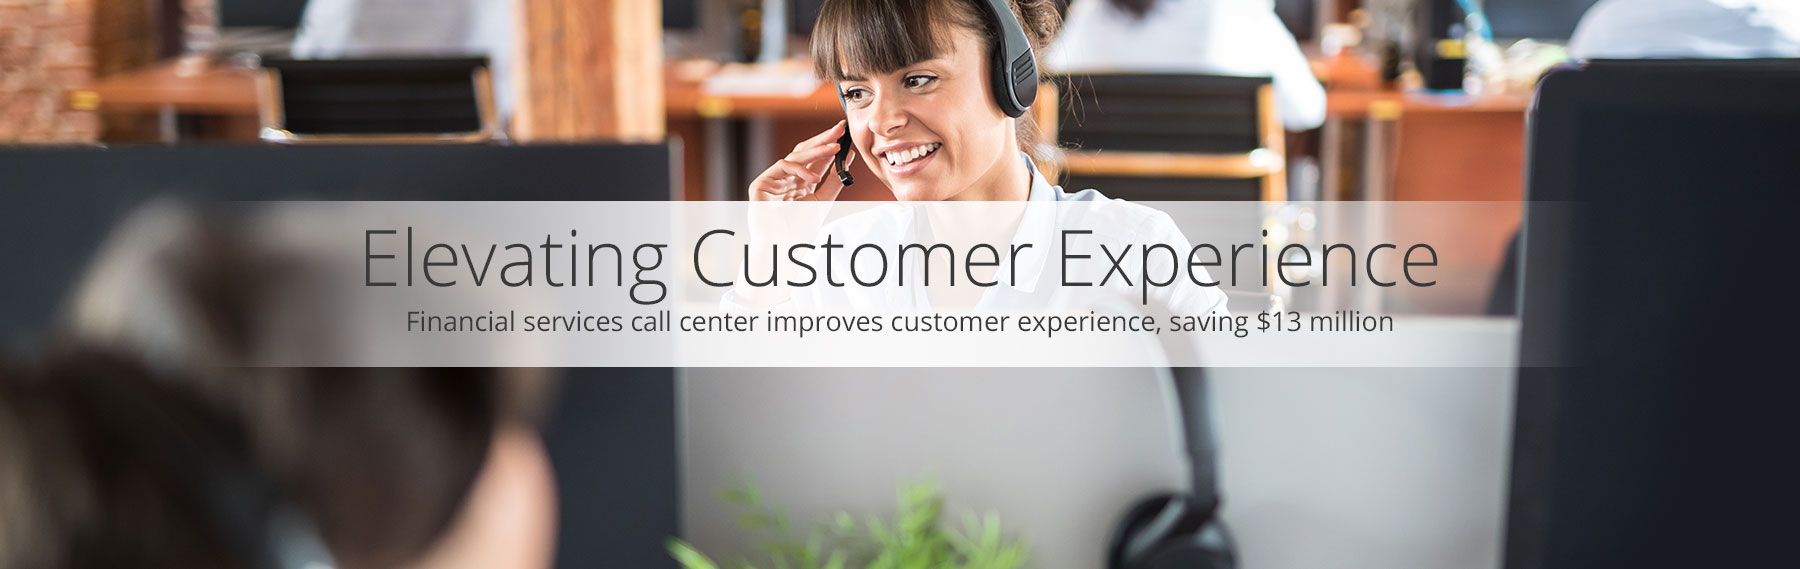 Customer Service Call Center Training